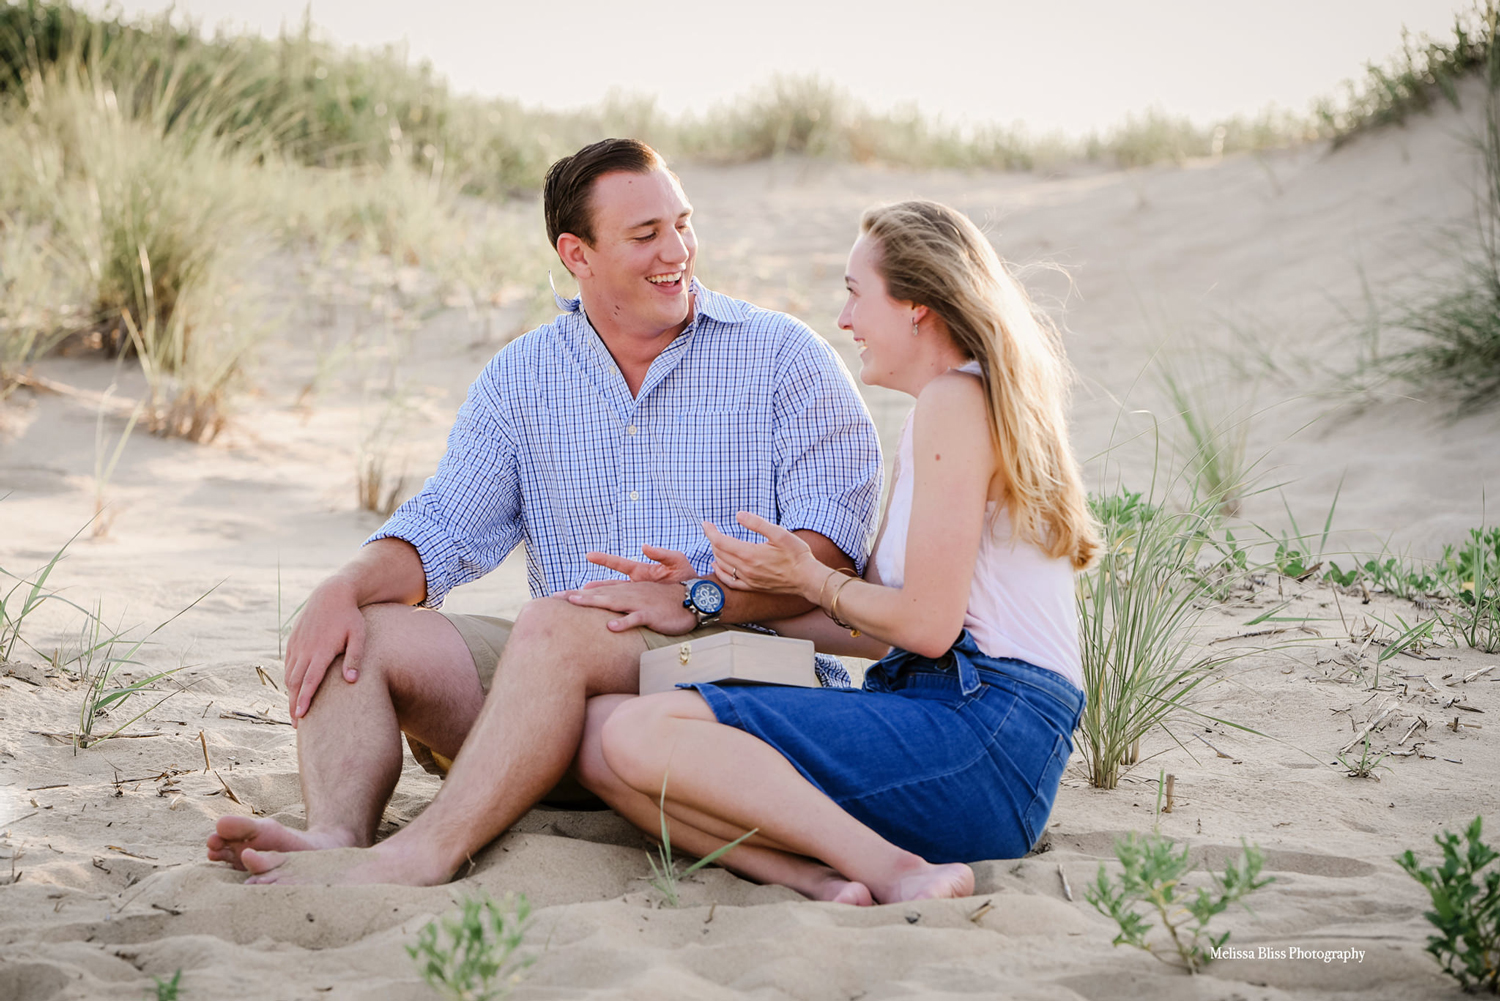 beach-proposal-virginia-beach-VA-melissa-bliss-photography-norfolk-engaegment-photographer.jpg